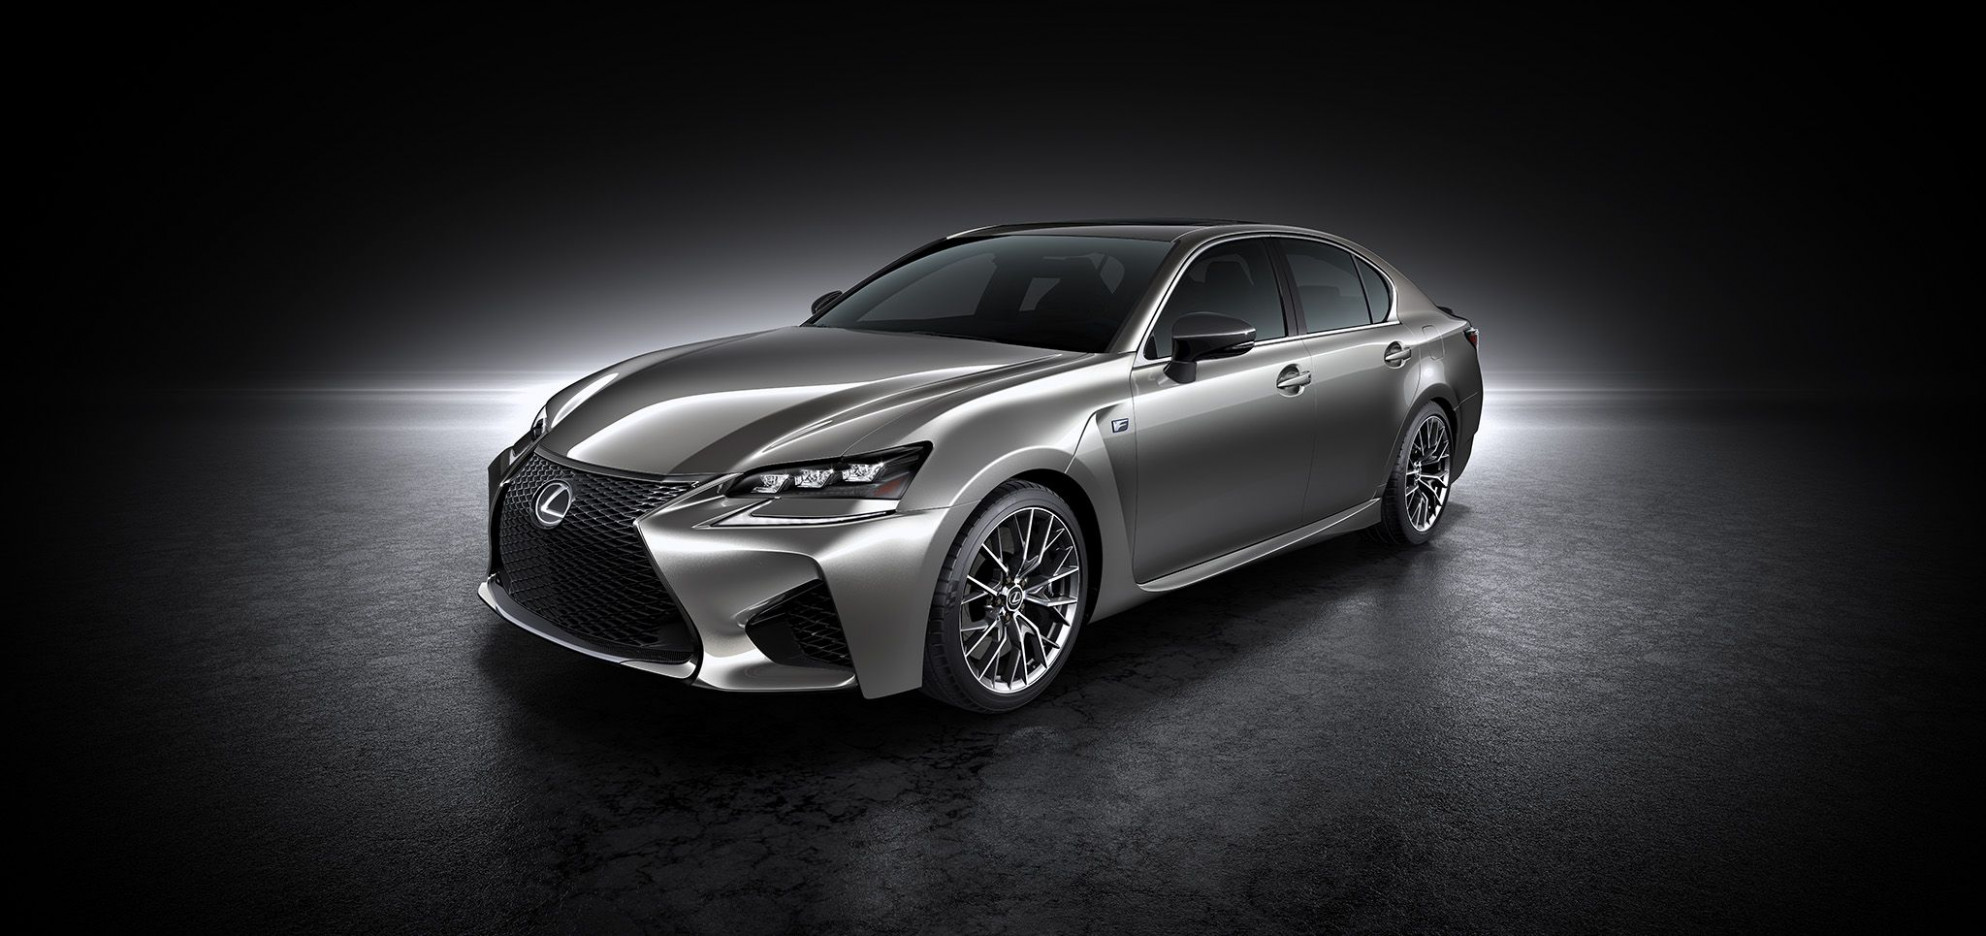 6 Lexus GS F Review, Pricing, and Specs - lexus gs f 2020